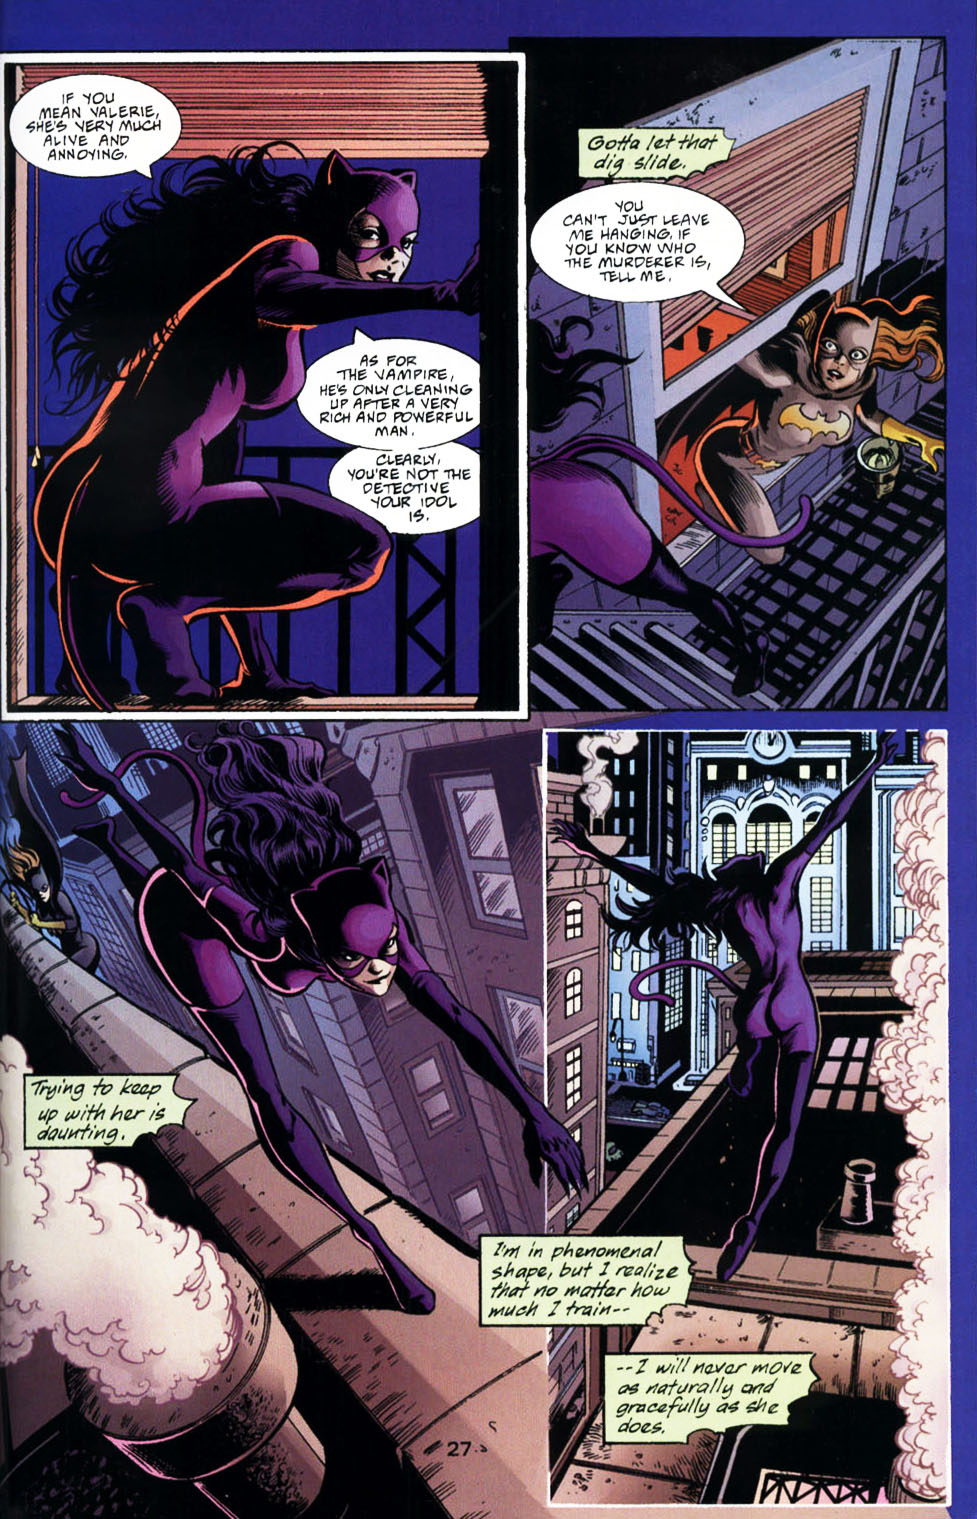 Birds Of Prey - Batgirl-Catwoman 1-27 SelinaKyle BarbaraGordon.jpg